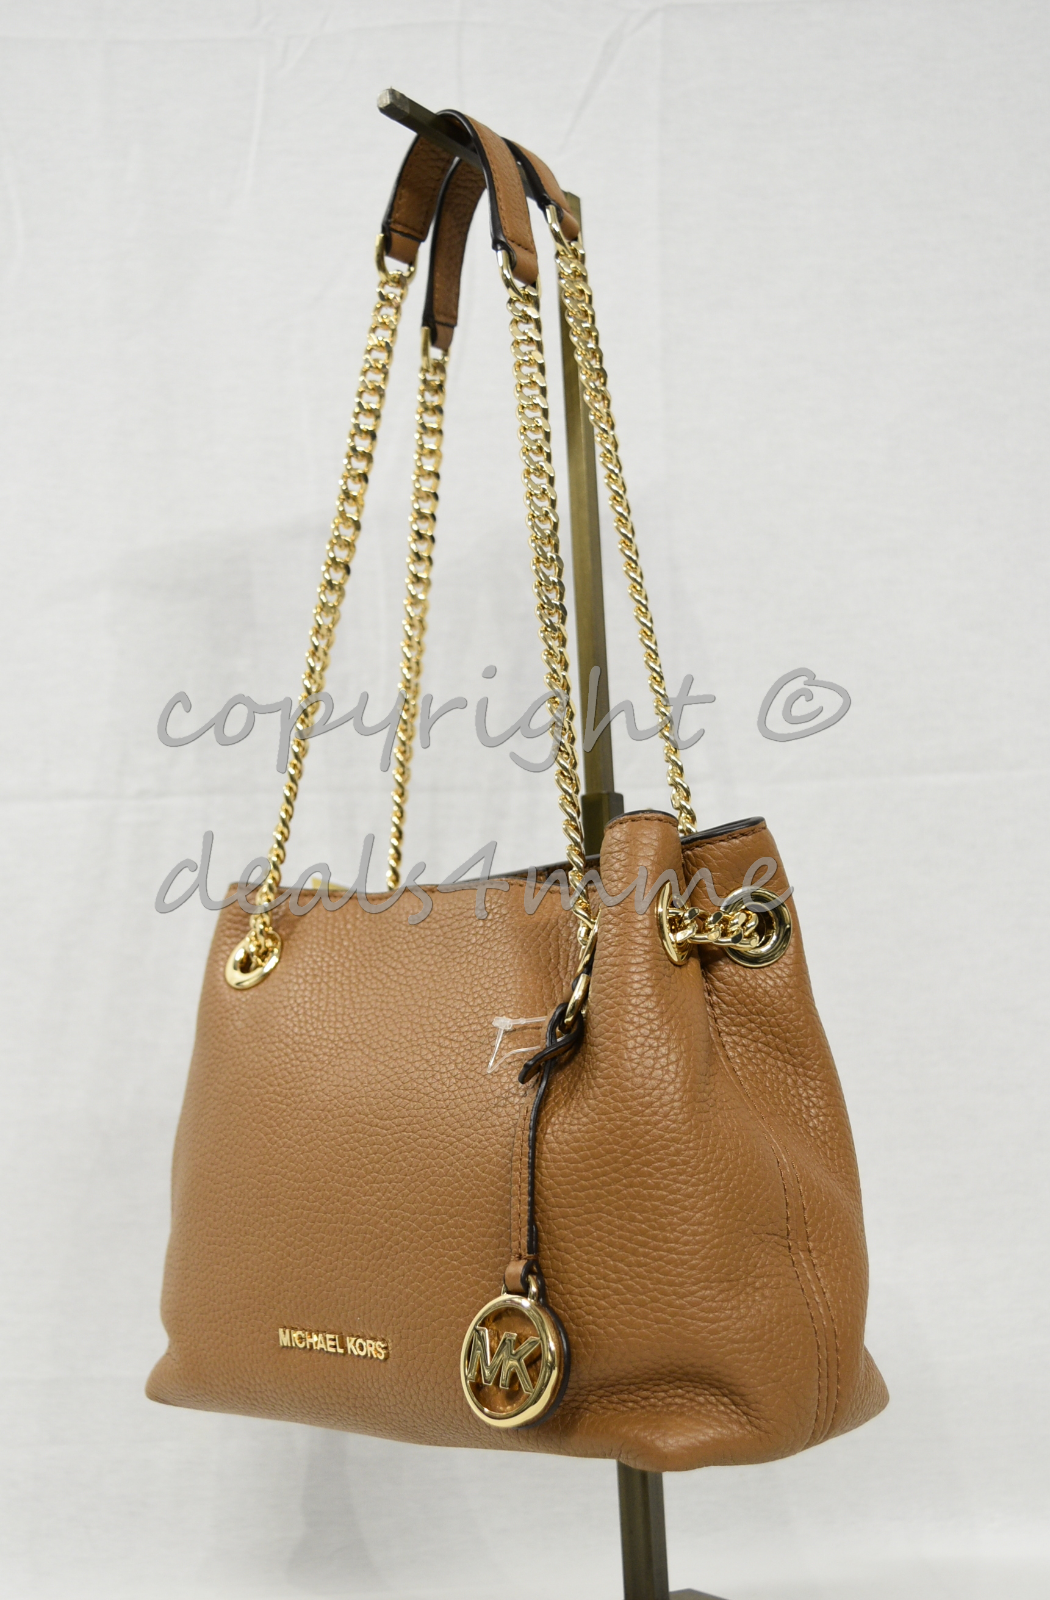 70d33f3e22fe S l1600. S l1600. Previous. Michael Kors Leather Jet Set North South Medium  Chain Messenger /Shoulder Bag